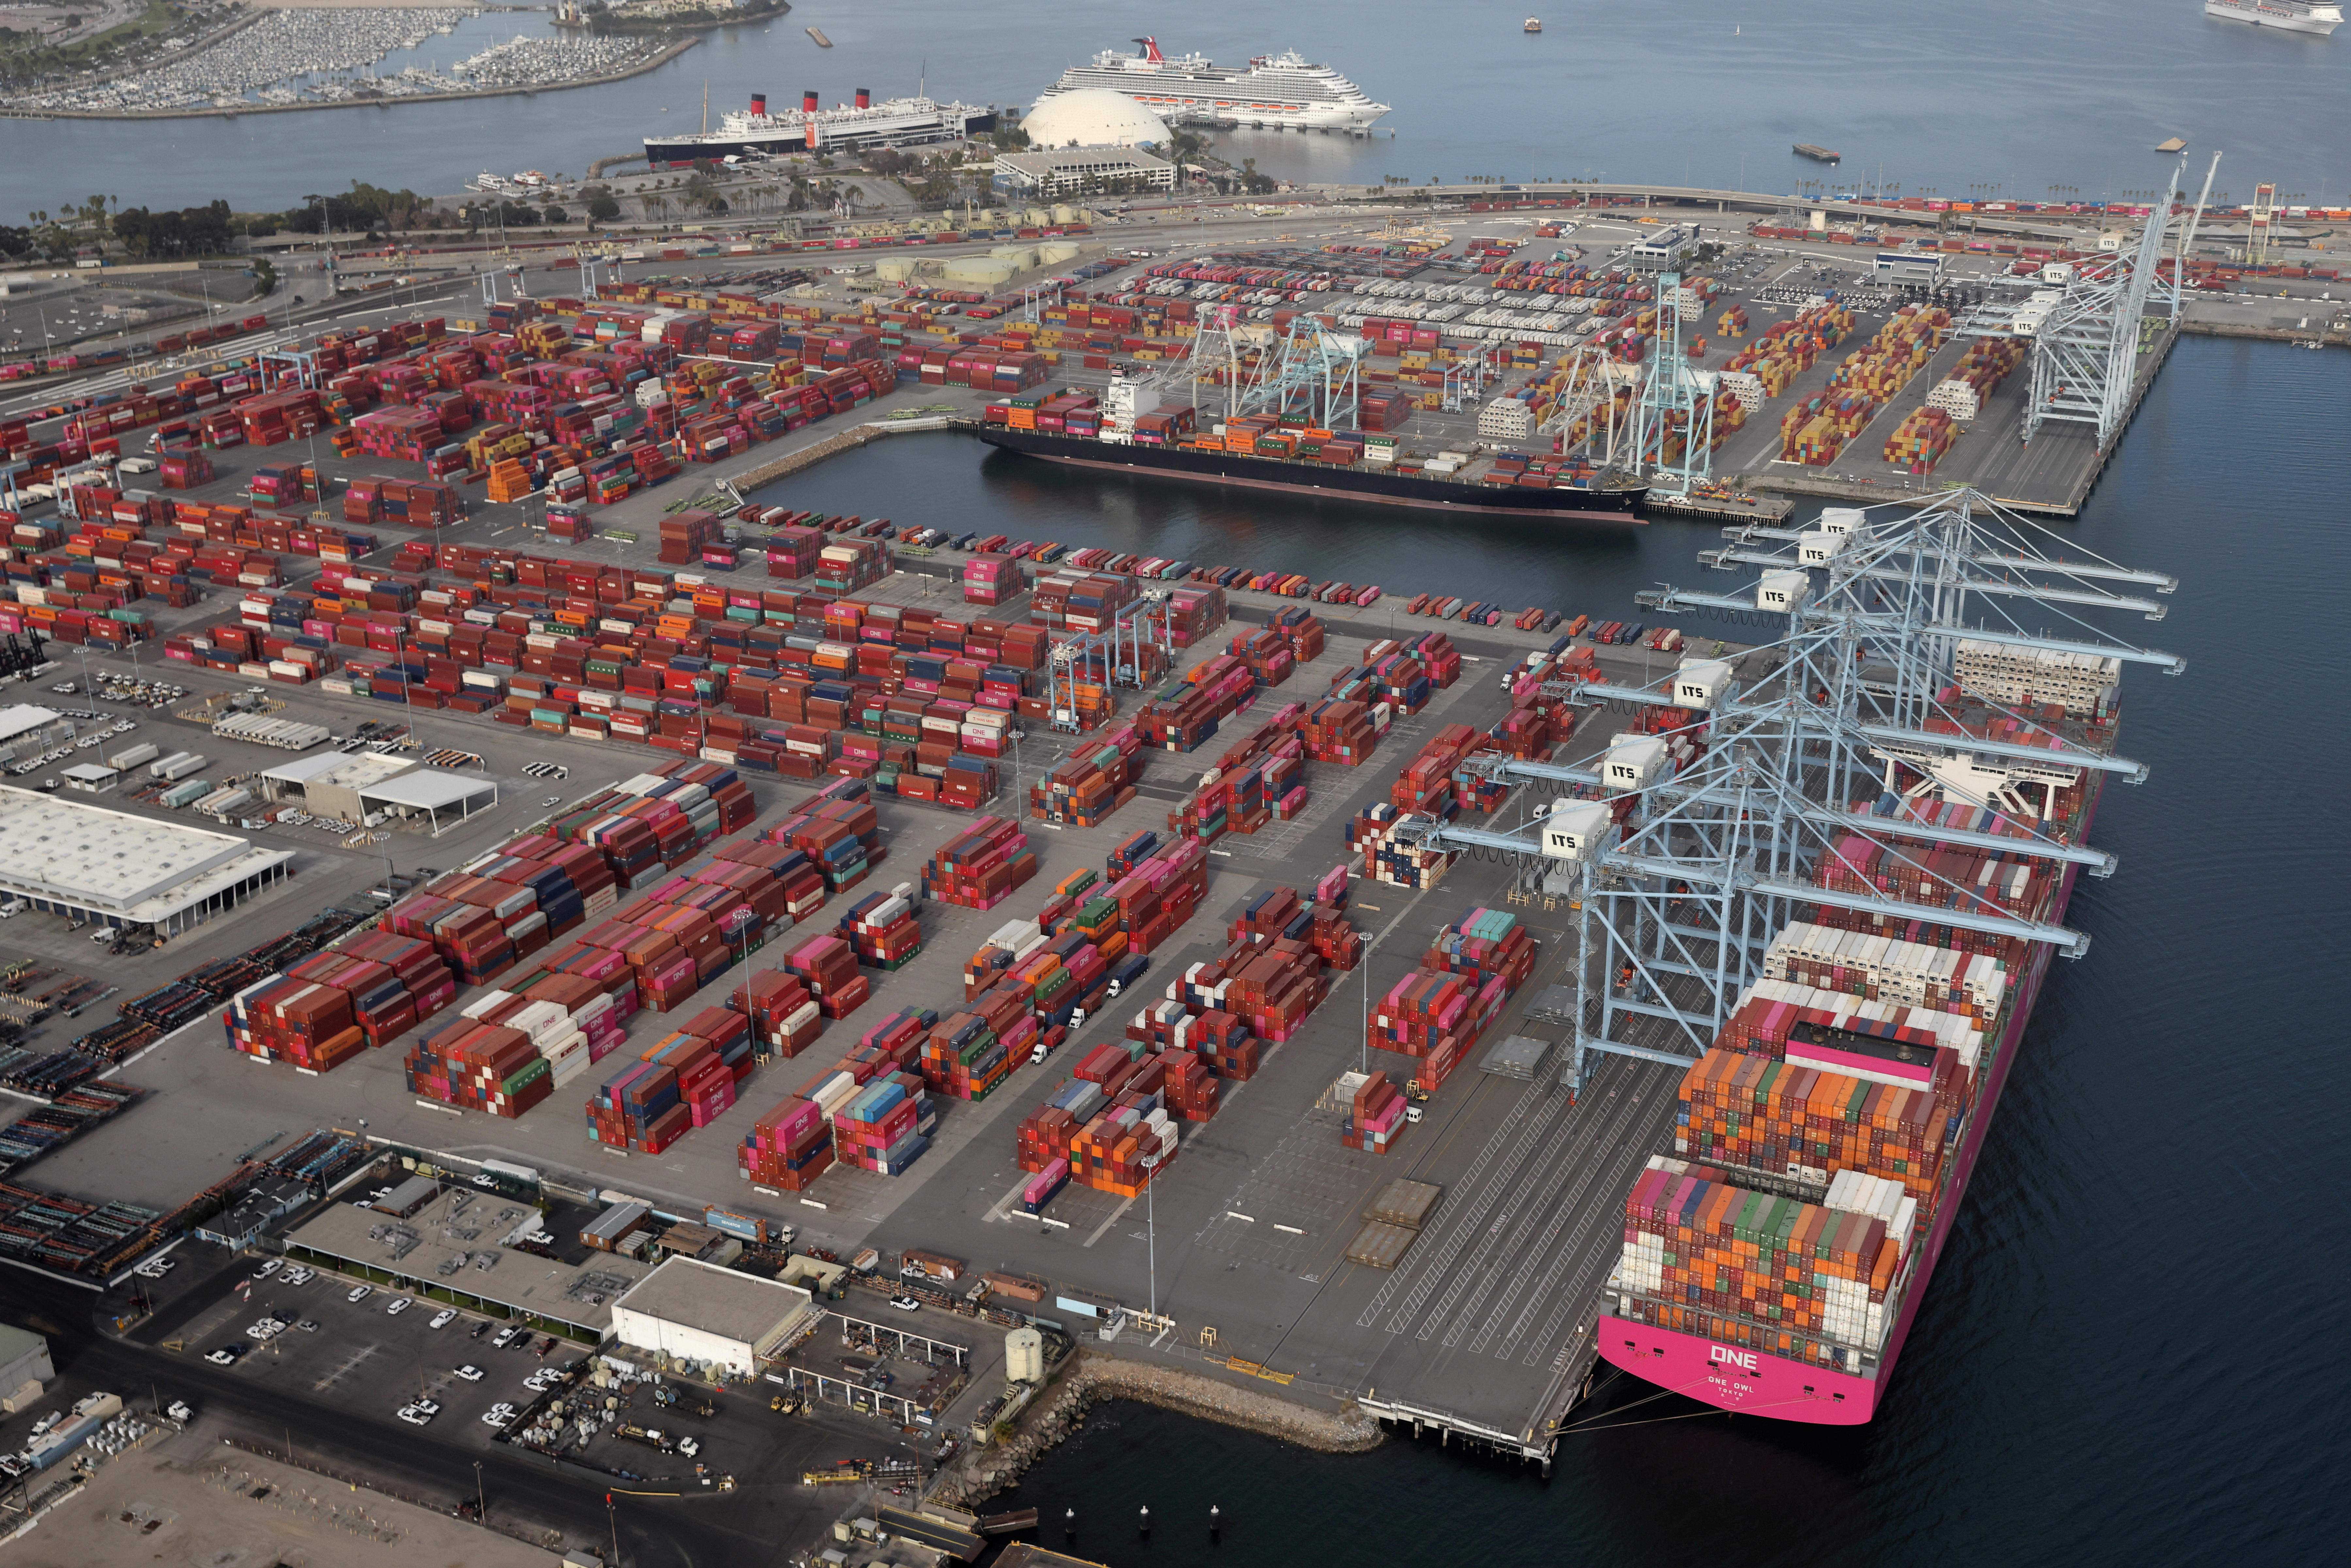 Shipping containers are unloaded from ships at a container terminal at the Port of Long Beach-Port of Los Angeles complex, amid the coronavirus disease (COVID-19) pandemic, in Los Angeles, California, U.S., April 7, 2021. REUTERS/Lucy Nicholson/File Photo